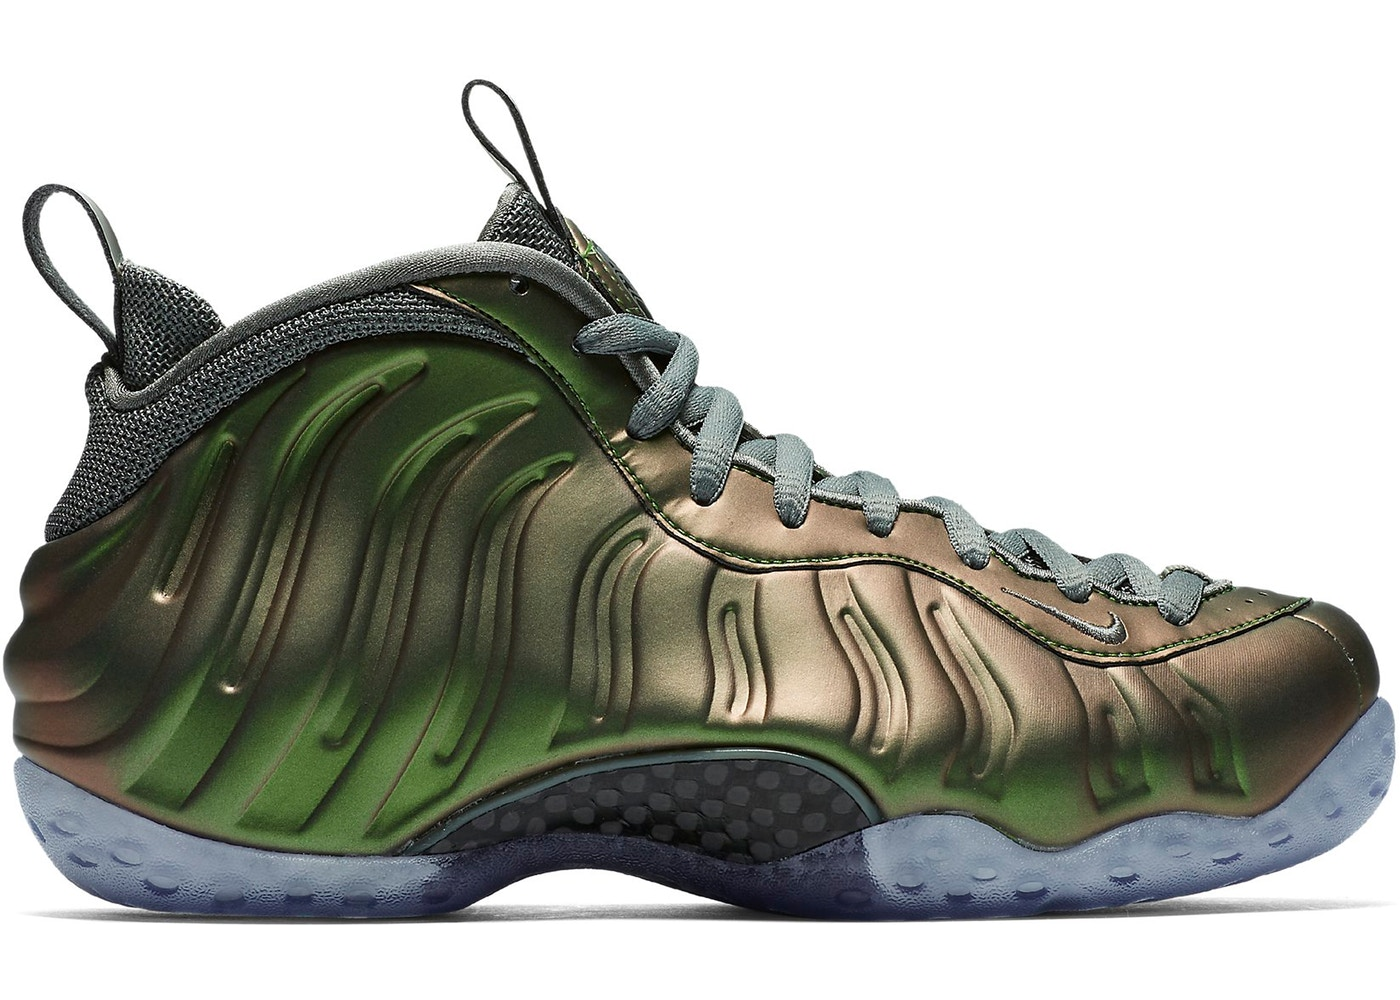 918c074bfac Air Foamposite One Iridescent (W) - AA3963-001